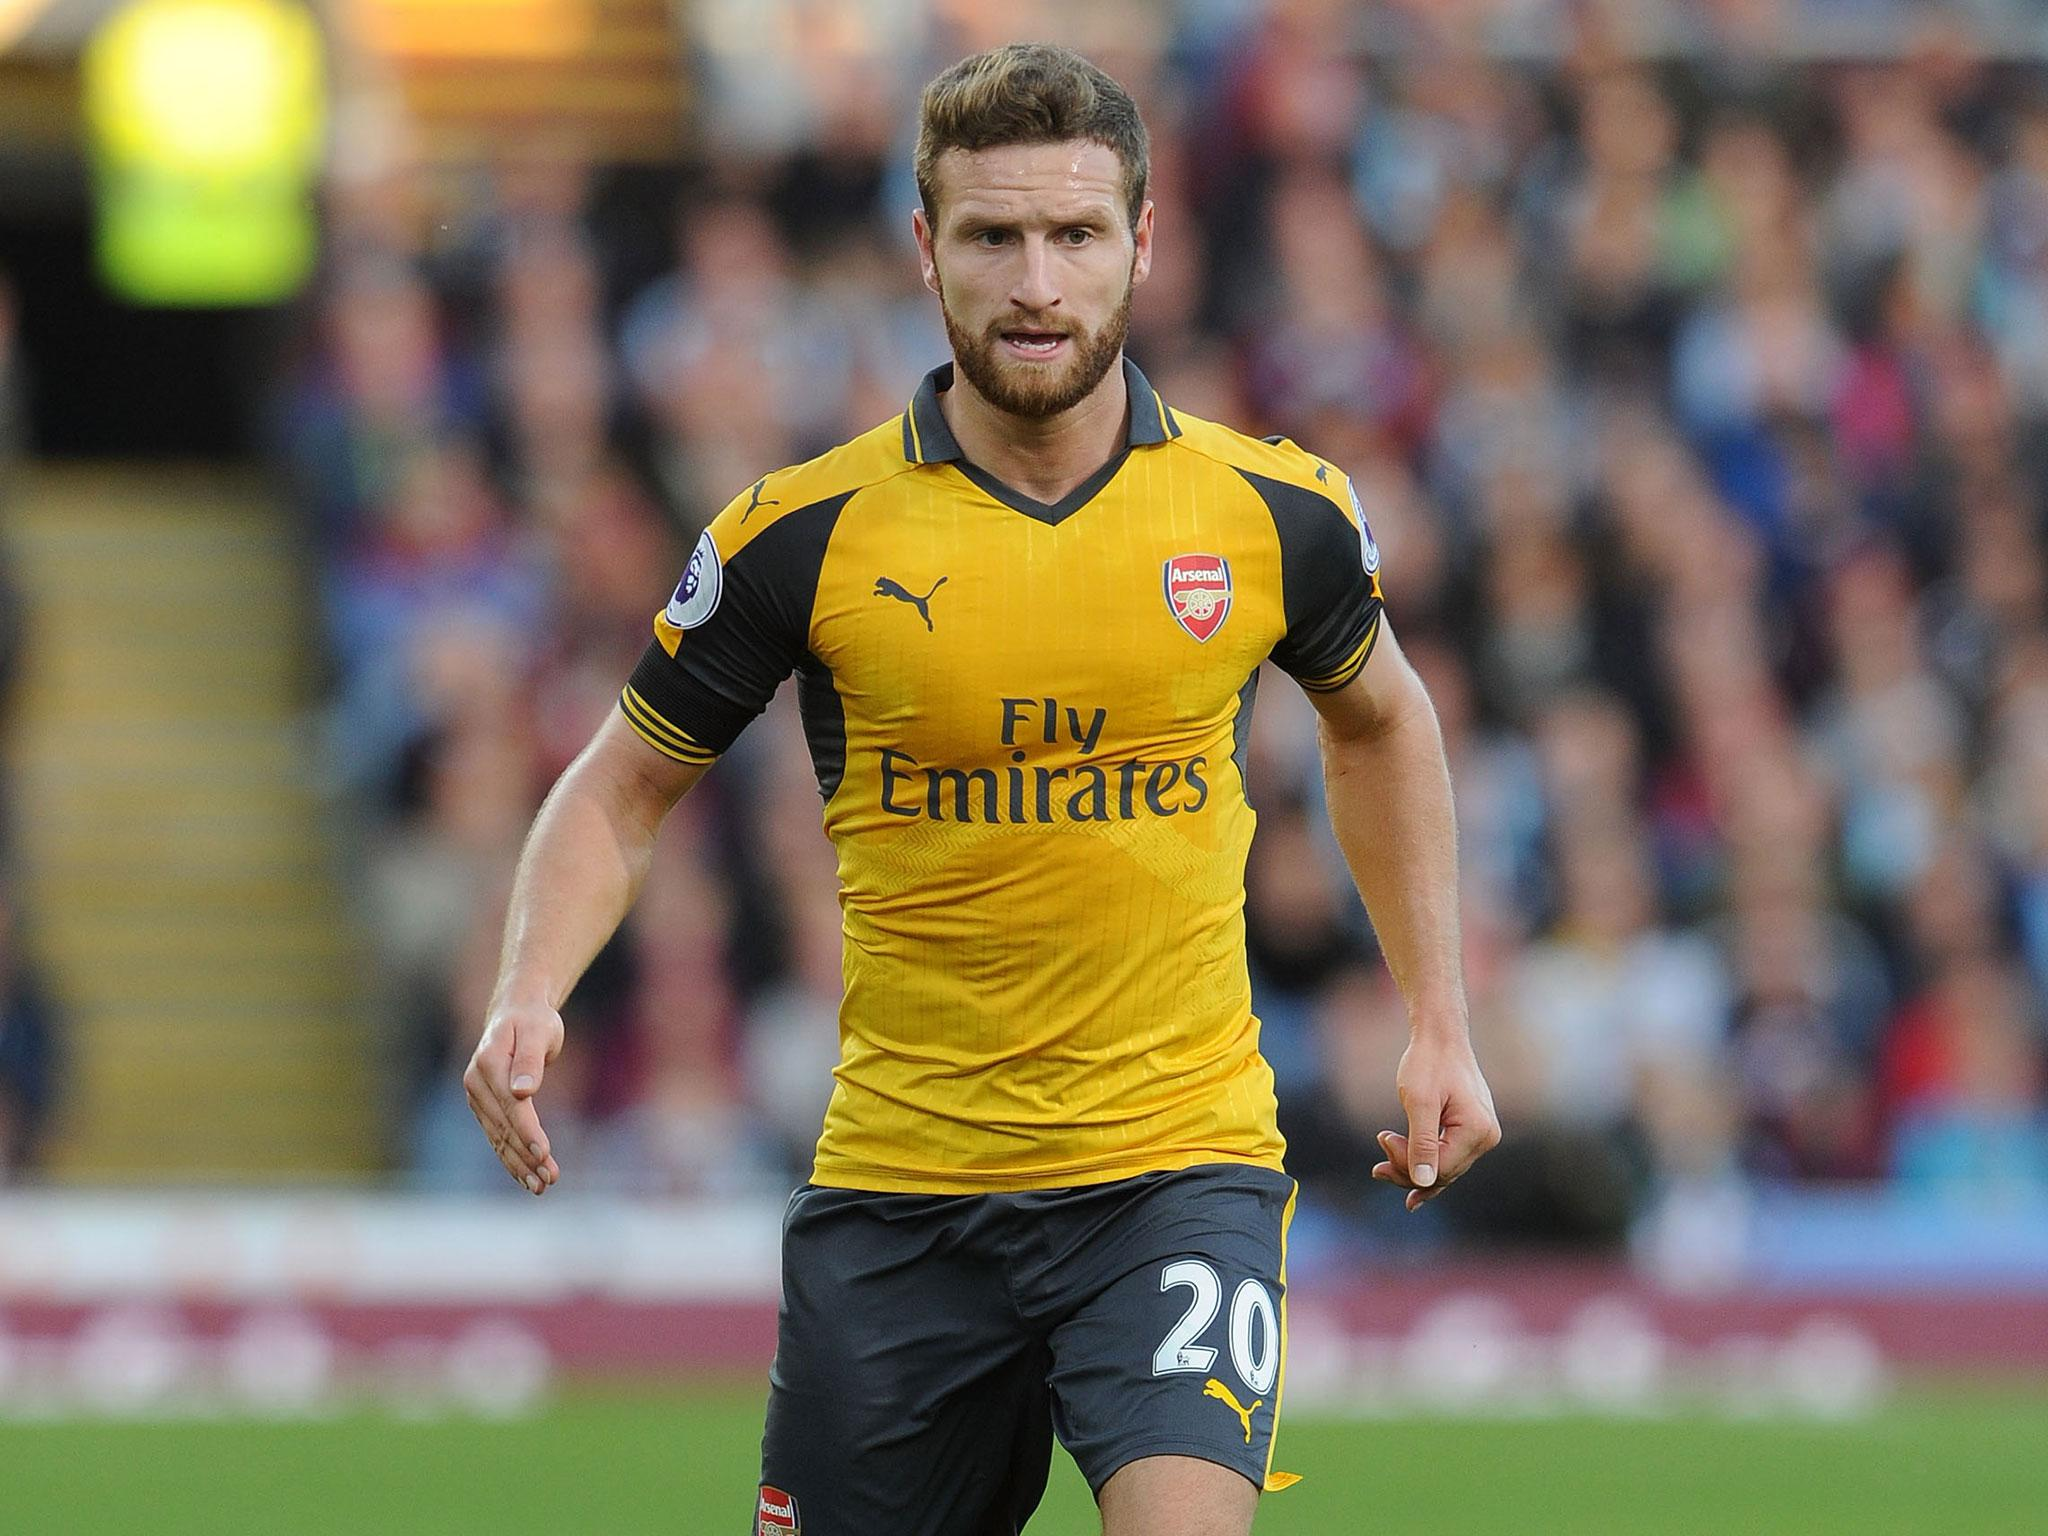 Arsenal Shkodran Mustafi has made a fine start to life with the